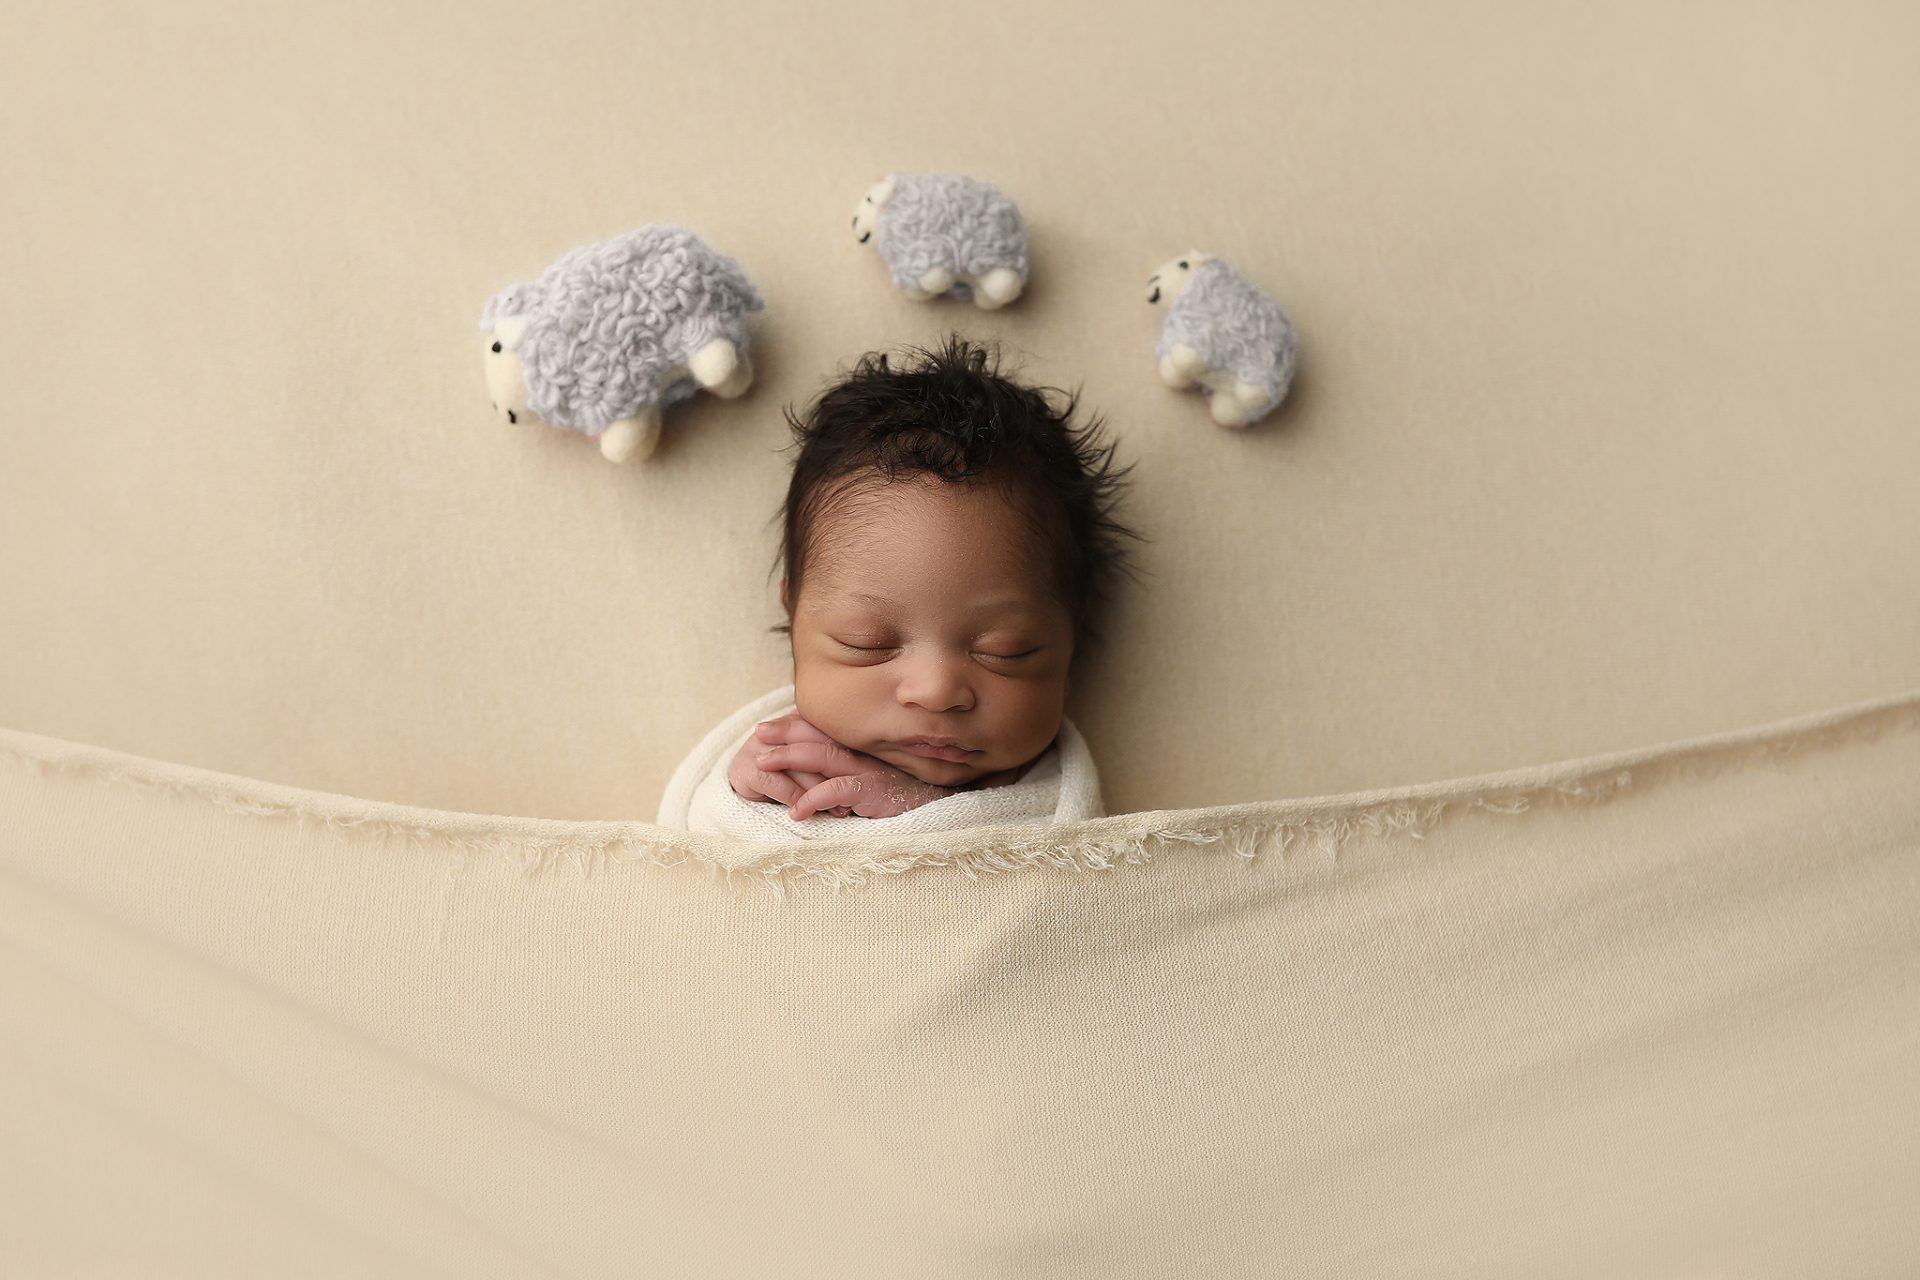 Tucson Baby poses with sheep